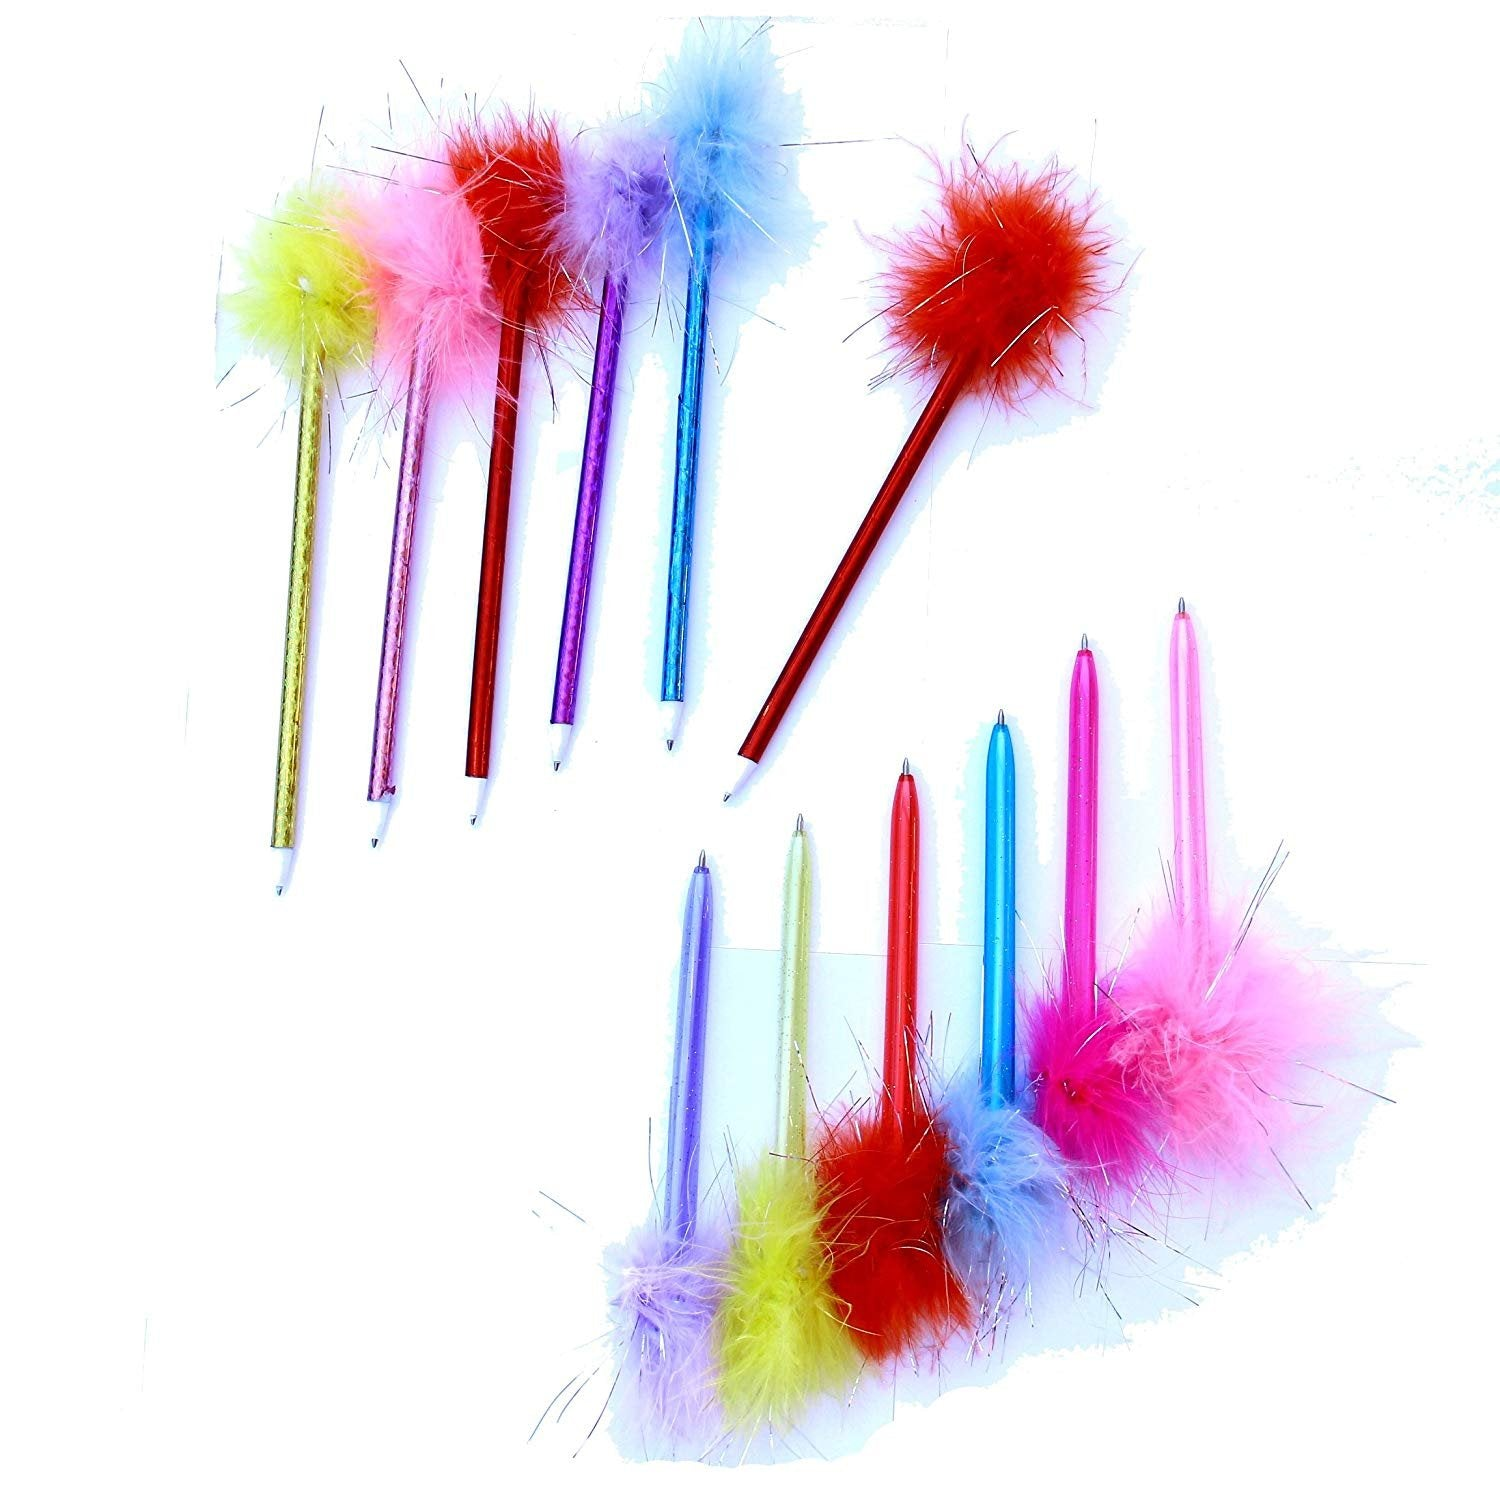 Dazzling Toys Marabou Feather Pens - 1 Dozen, Assorted Colors